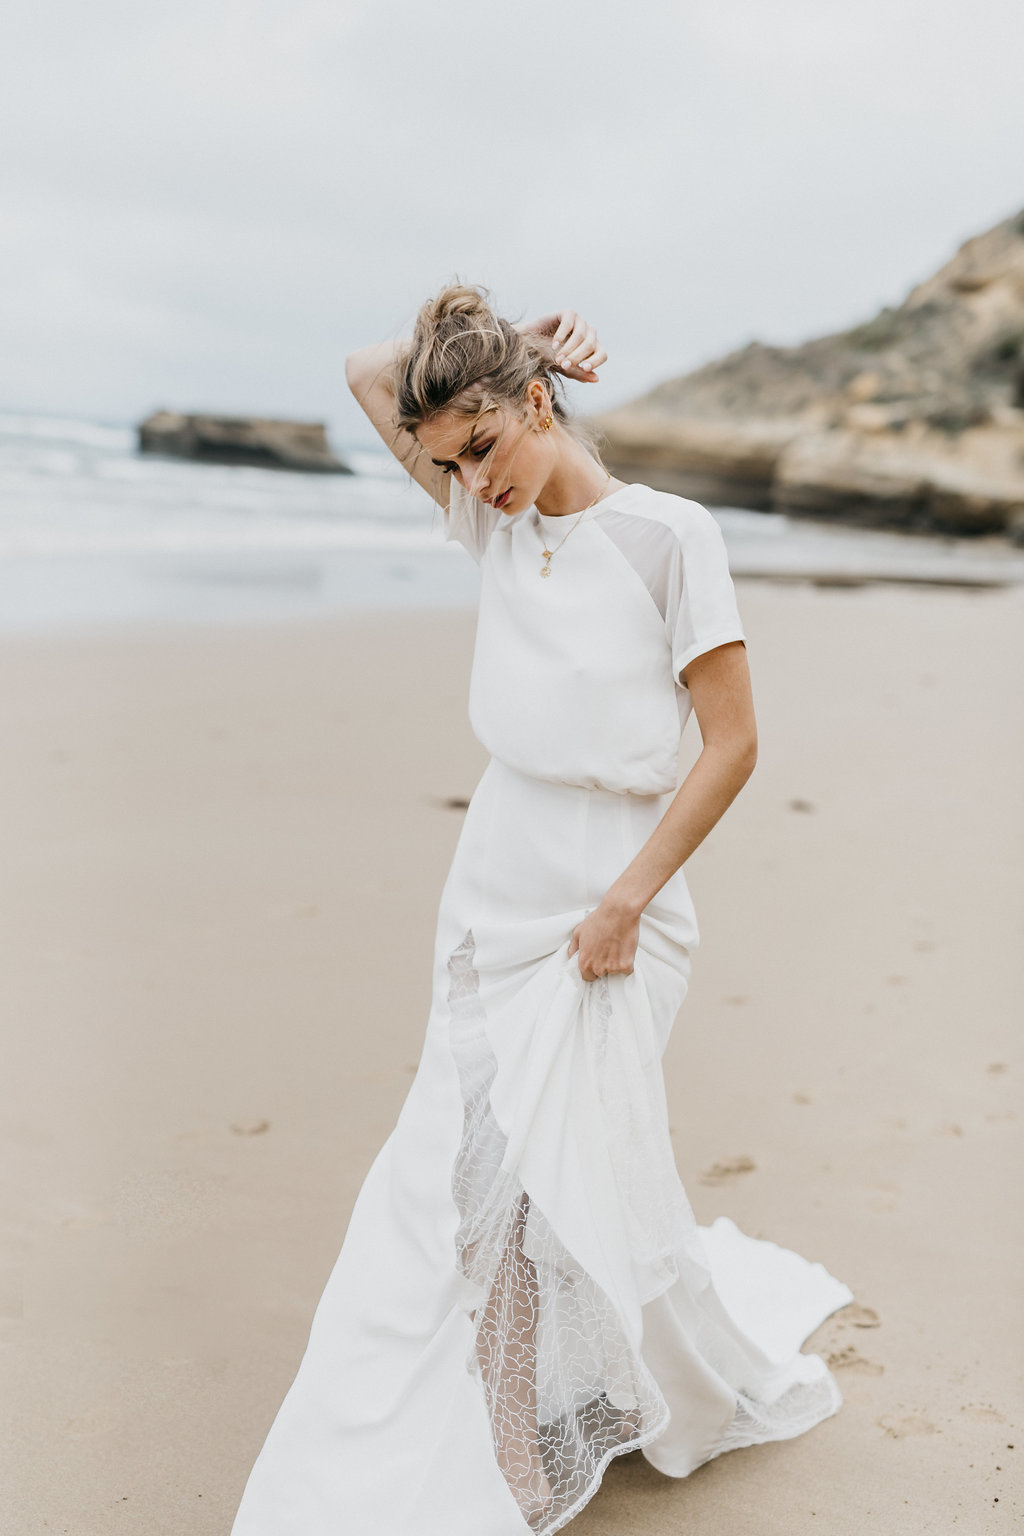 GEORGIA YOUNG COUTURE Cumquat Gown | Wedding Dresses under $5,000 | LOVE FIND CO. Bridal Directory